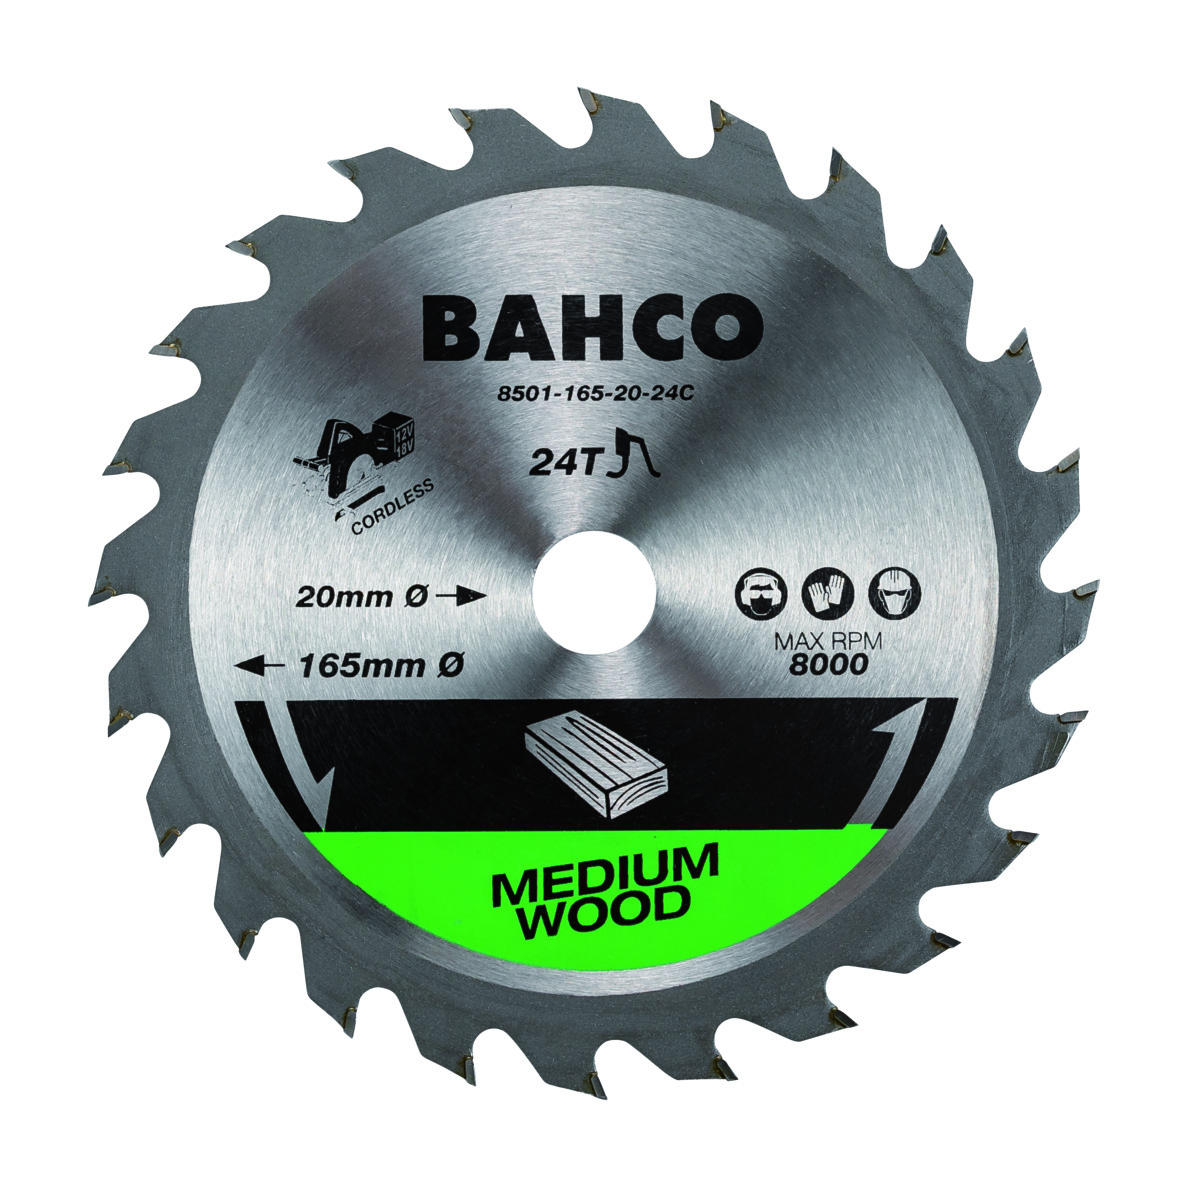 Circular saw blade for cordless saw machines 150x10mm 24T for wood